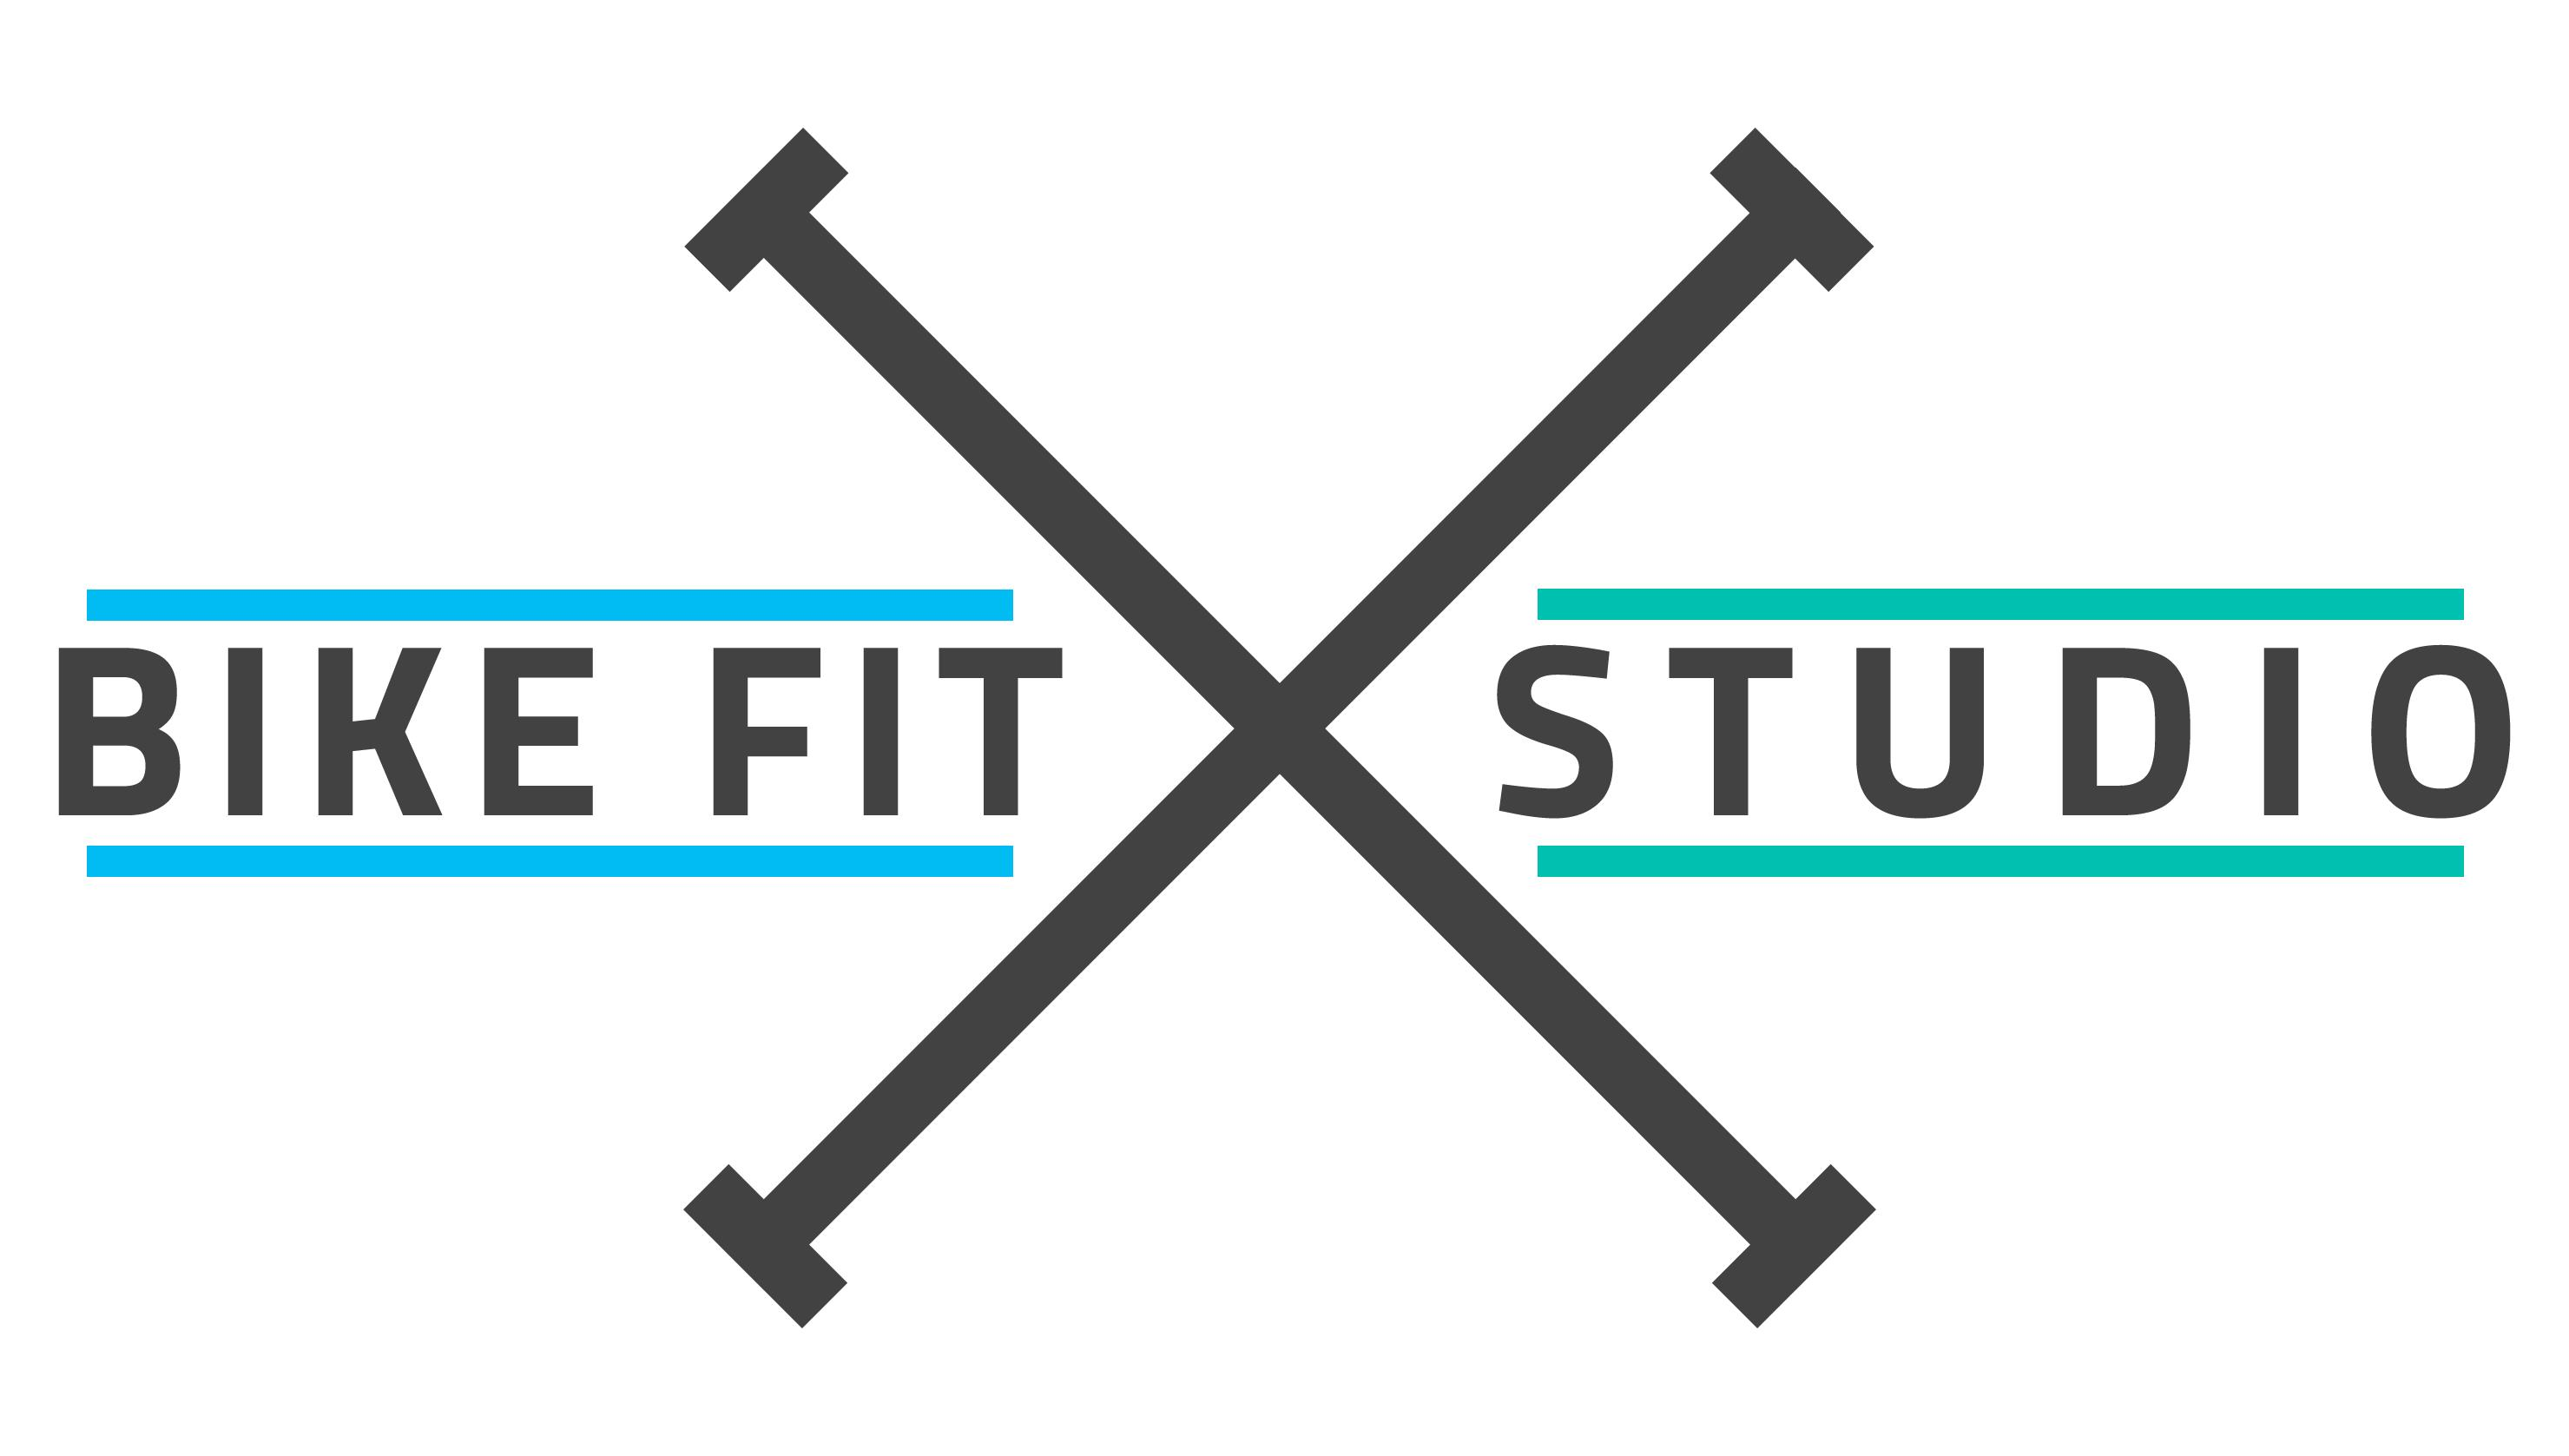 Bike Fit Studio